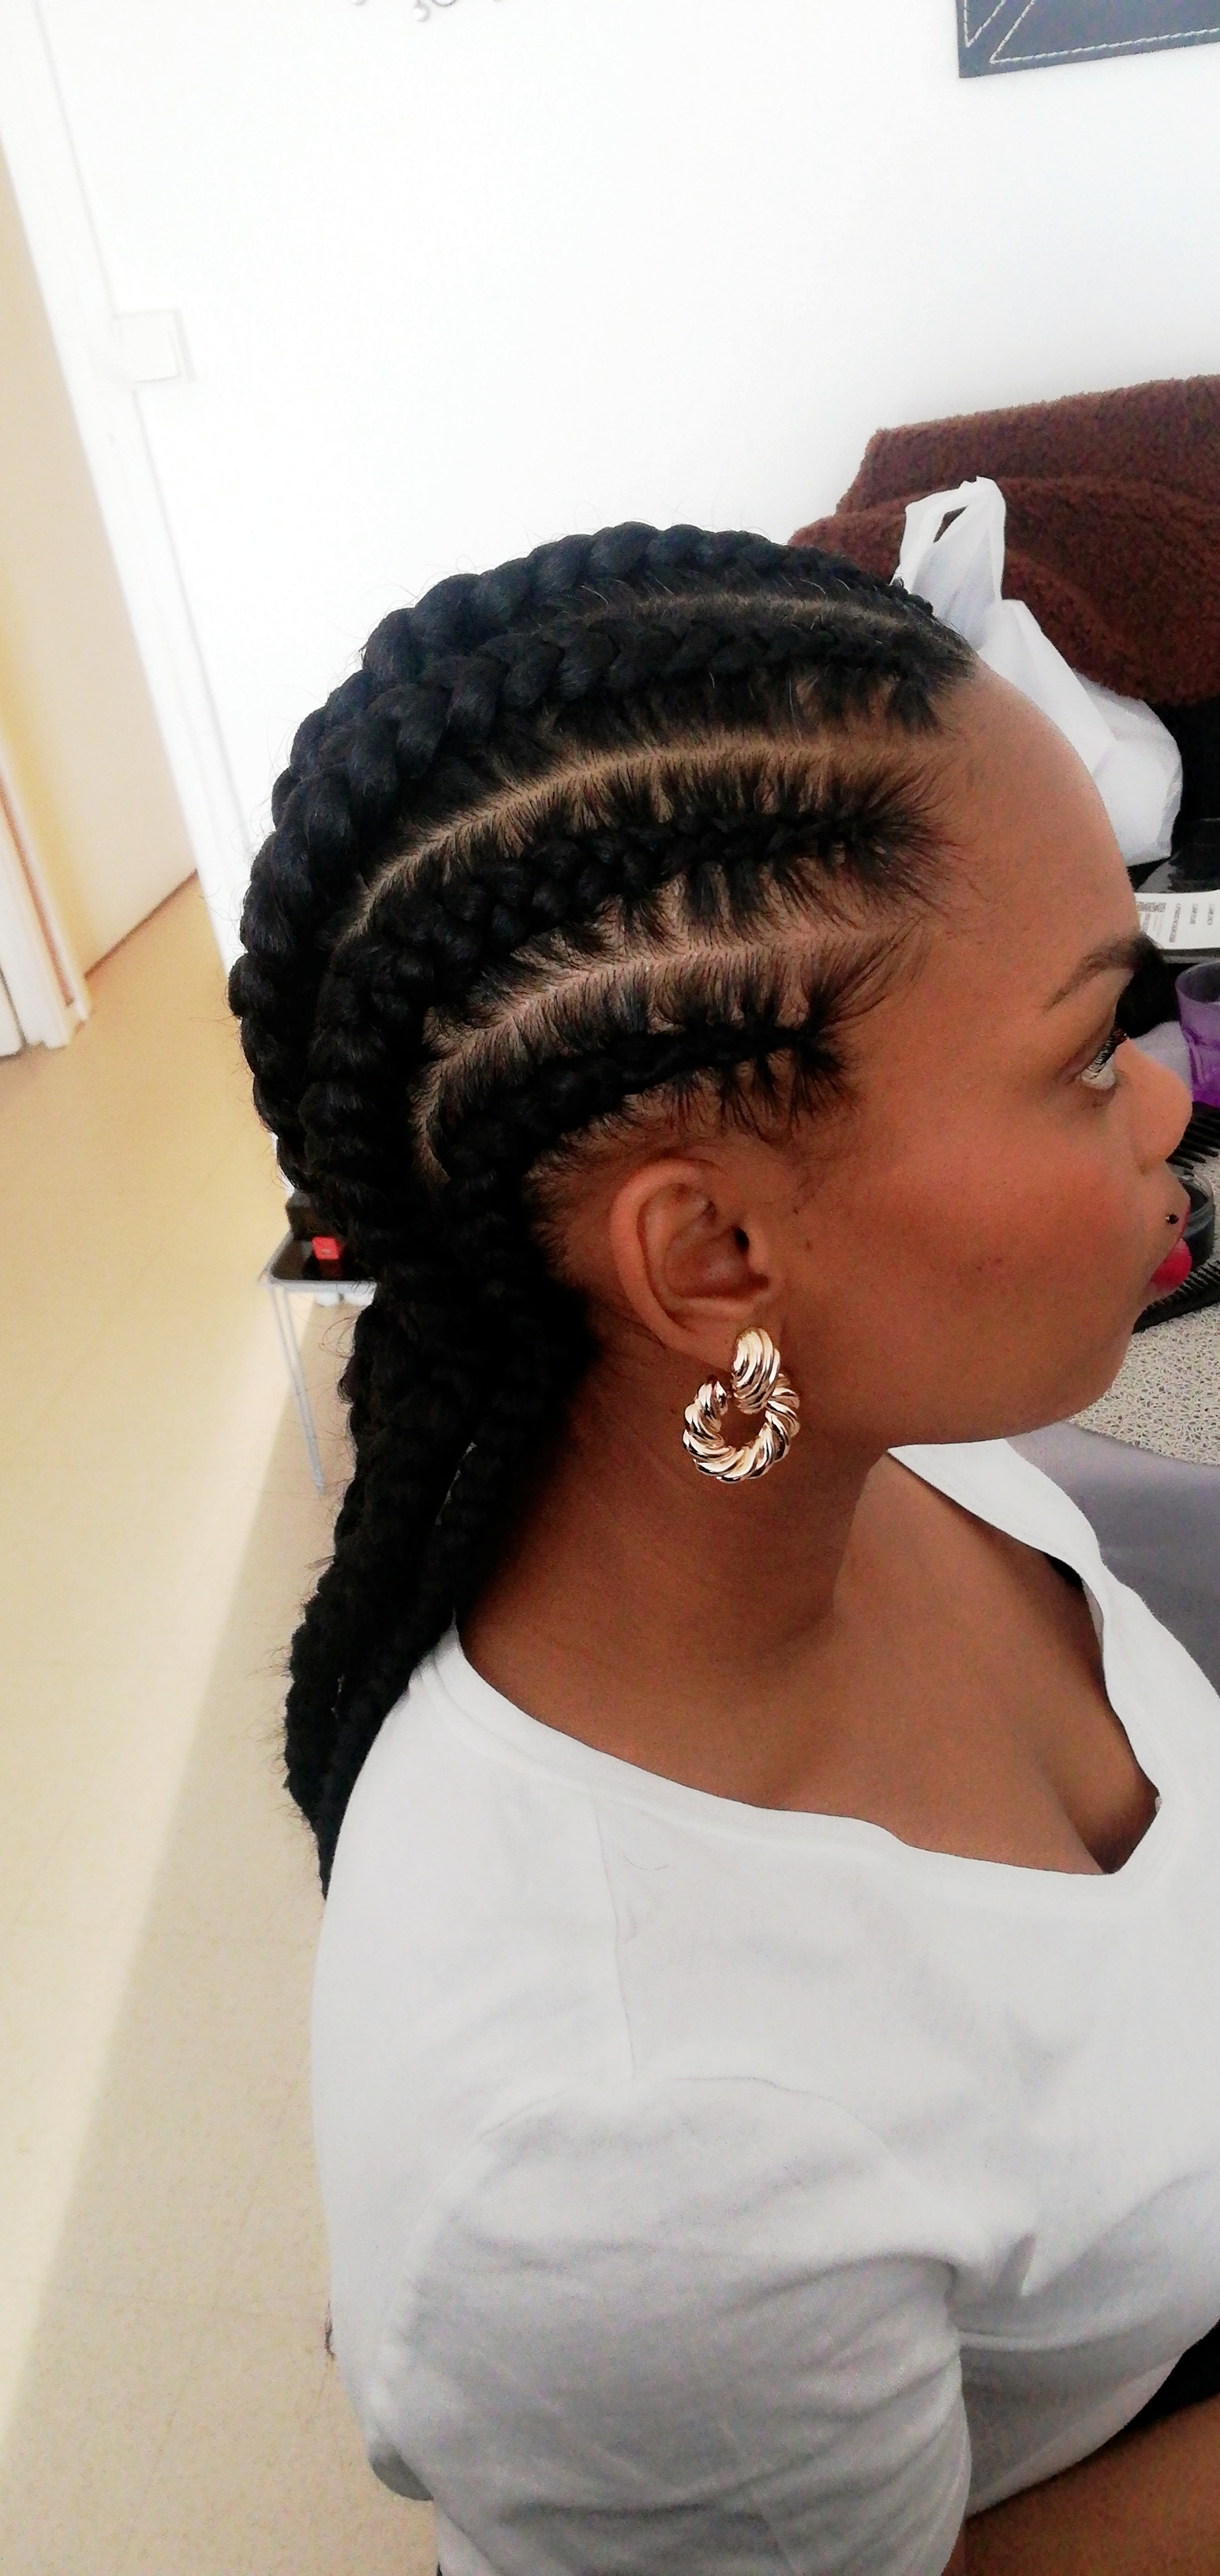 salon de coiffure afro tresse tresses box braids crochet braids vanilles tissages paris 75 77 78 91 92 93 94 95 WKNVHBMN